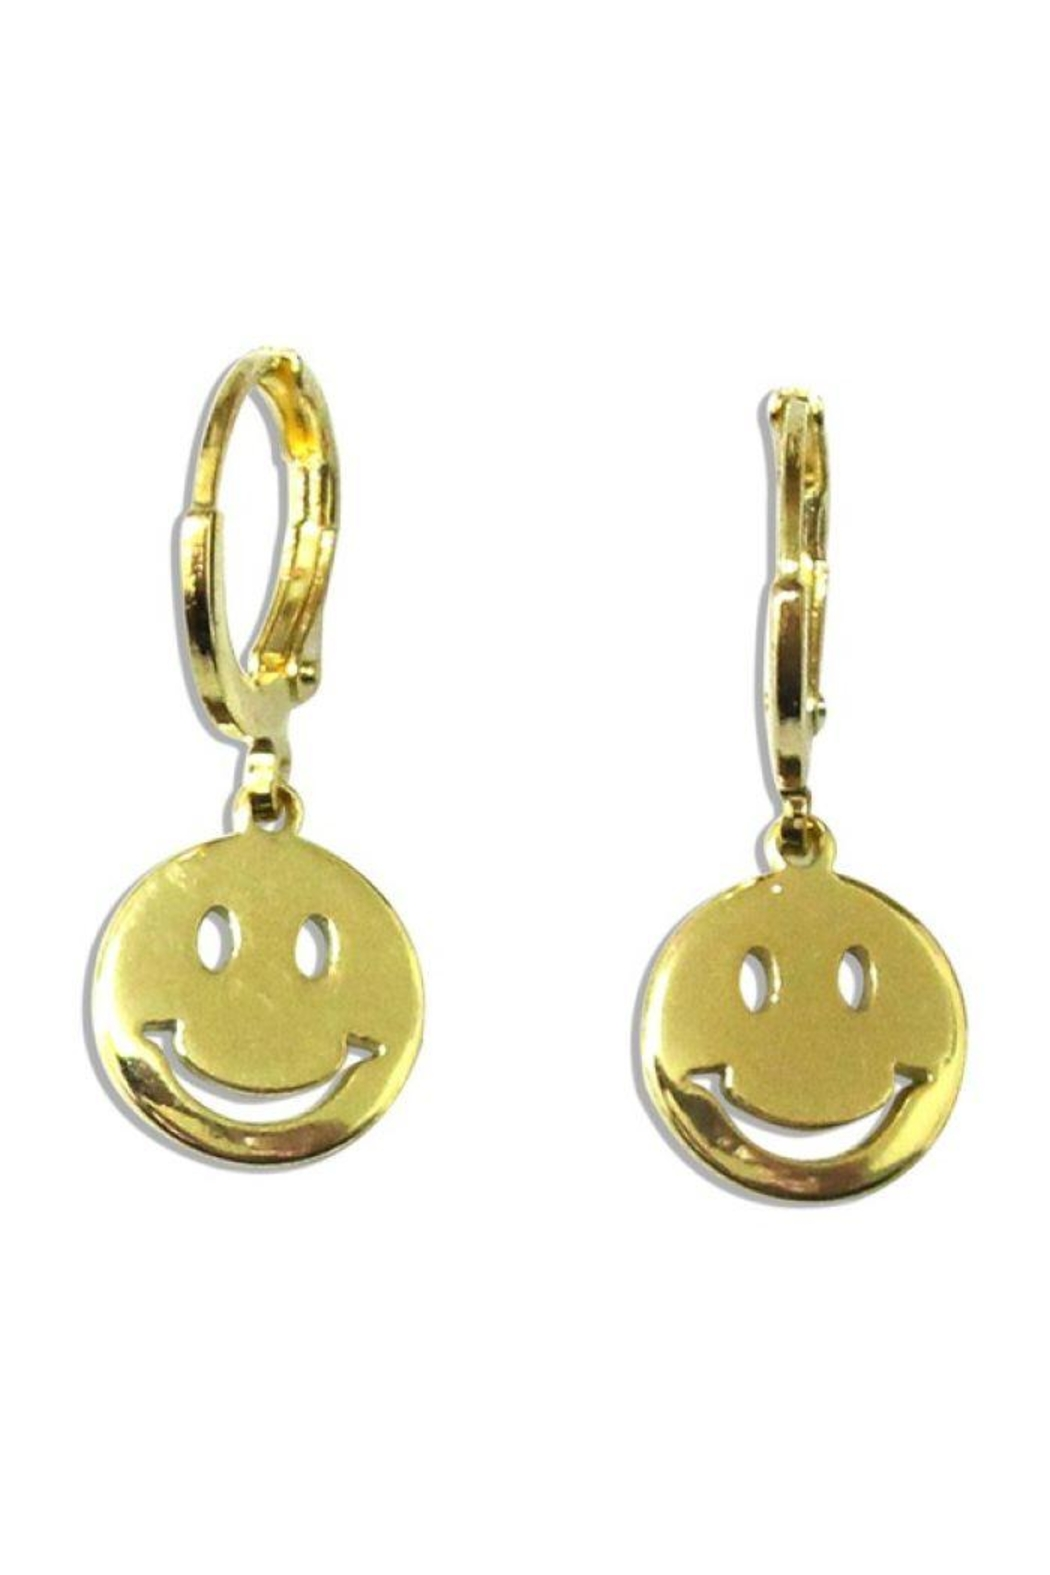 Ana Accessories Cut Out Smiley Earrings - Main Image